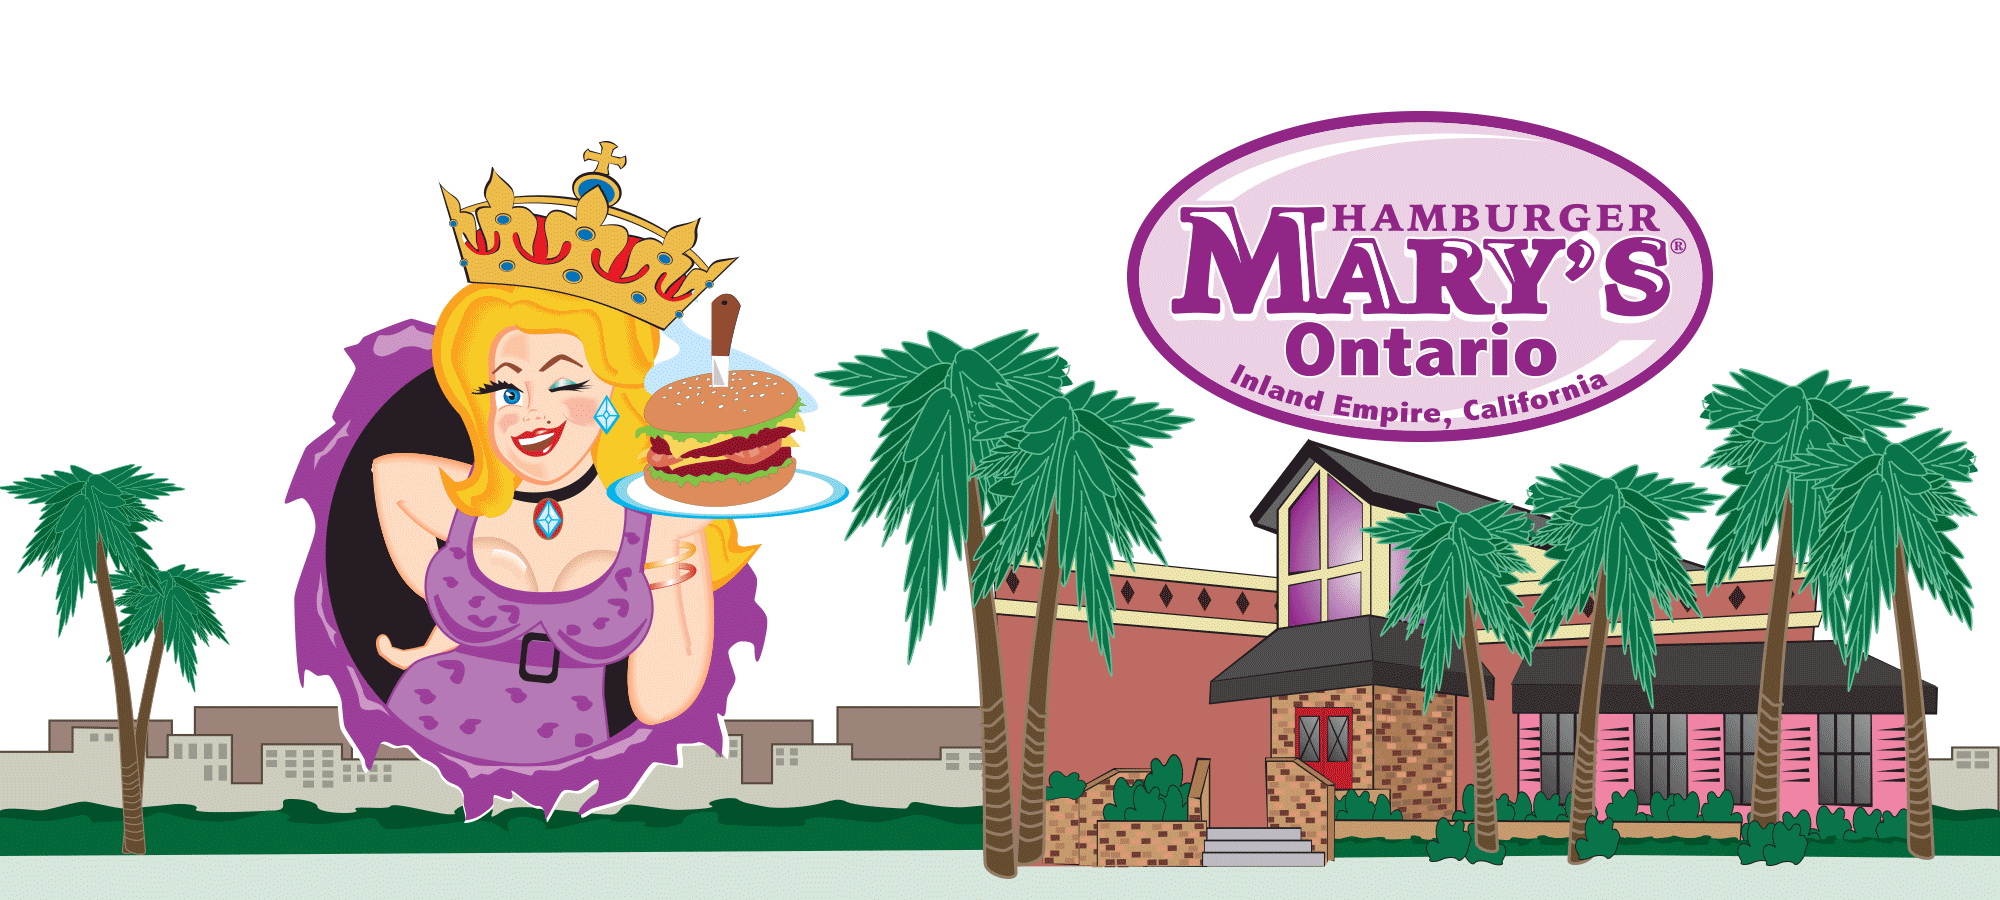 Hamburger Marys Ontario California Skyline